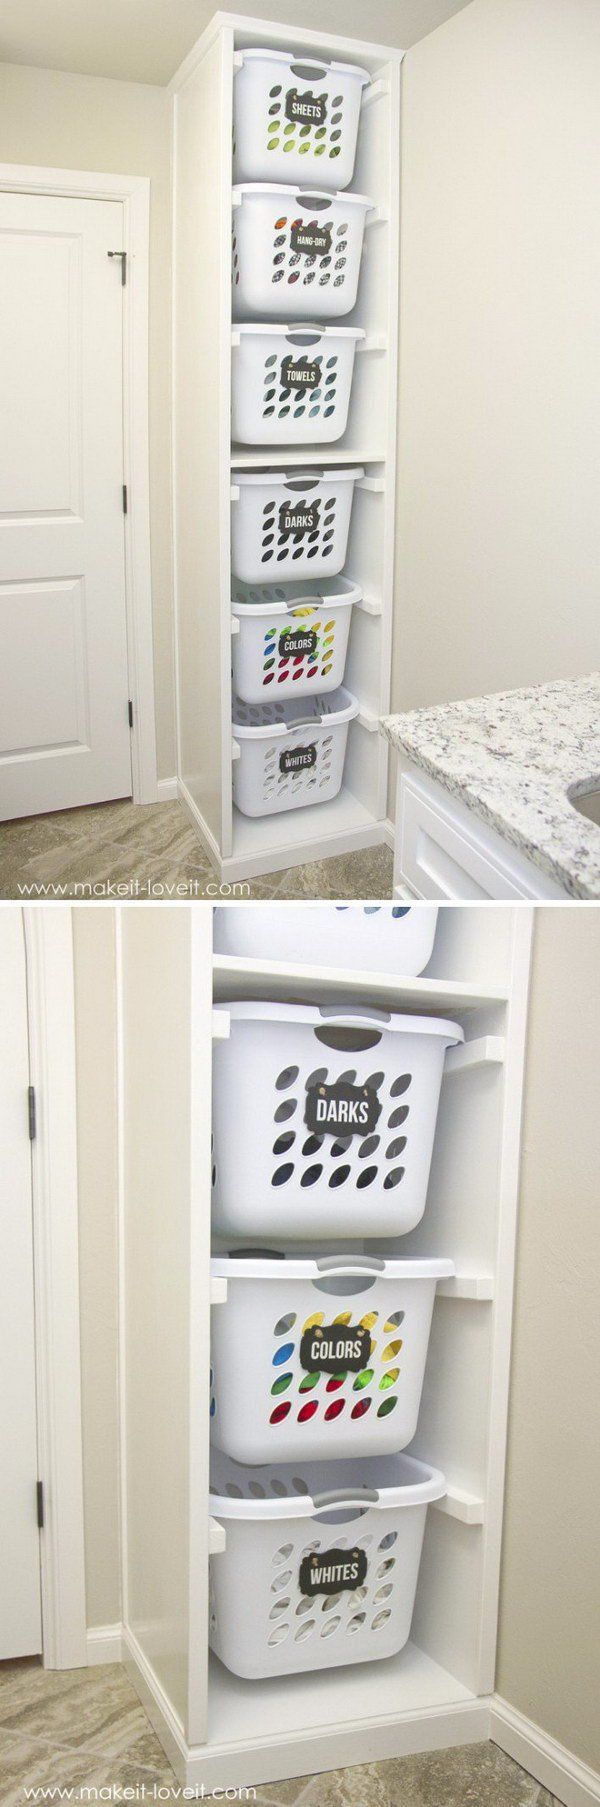 25 best ideas about laundry basket shelves on pinterest laundry basket storage laundry room - Laundry hampers for small spaces plan ...